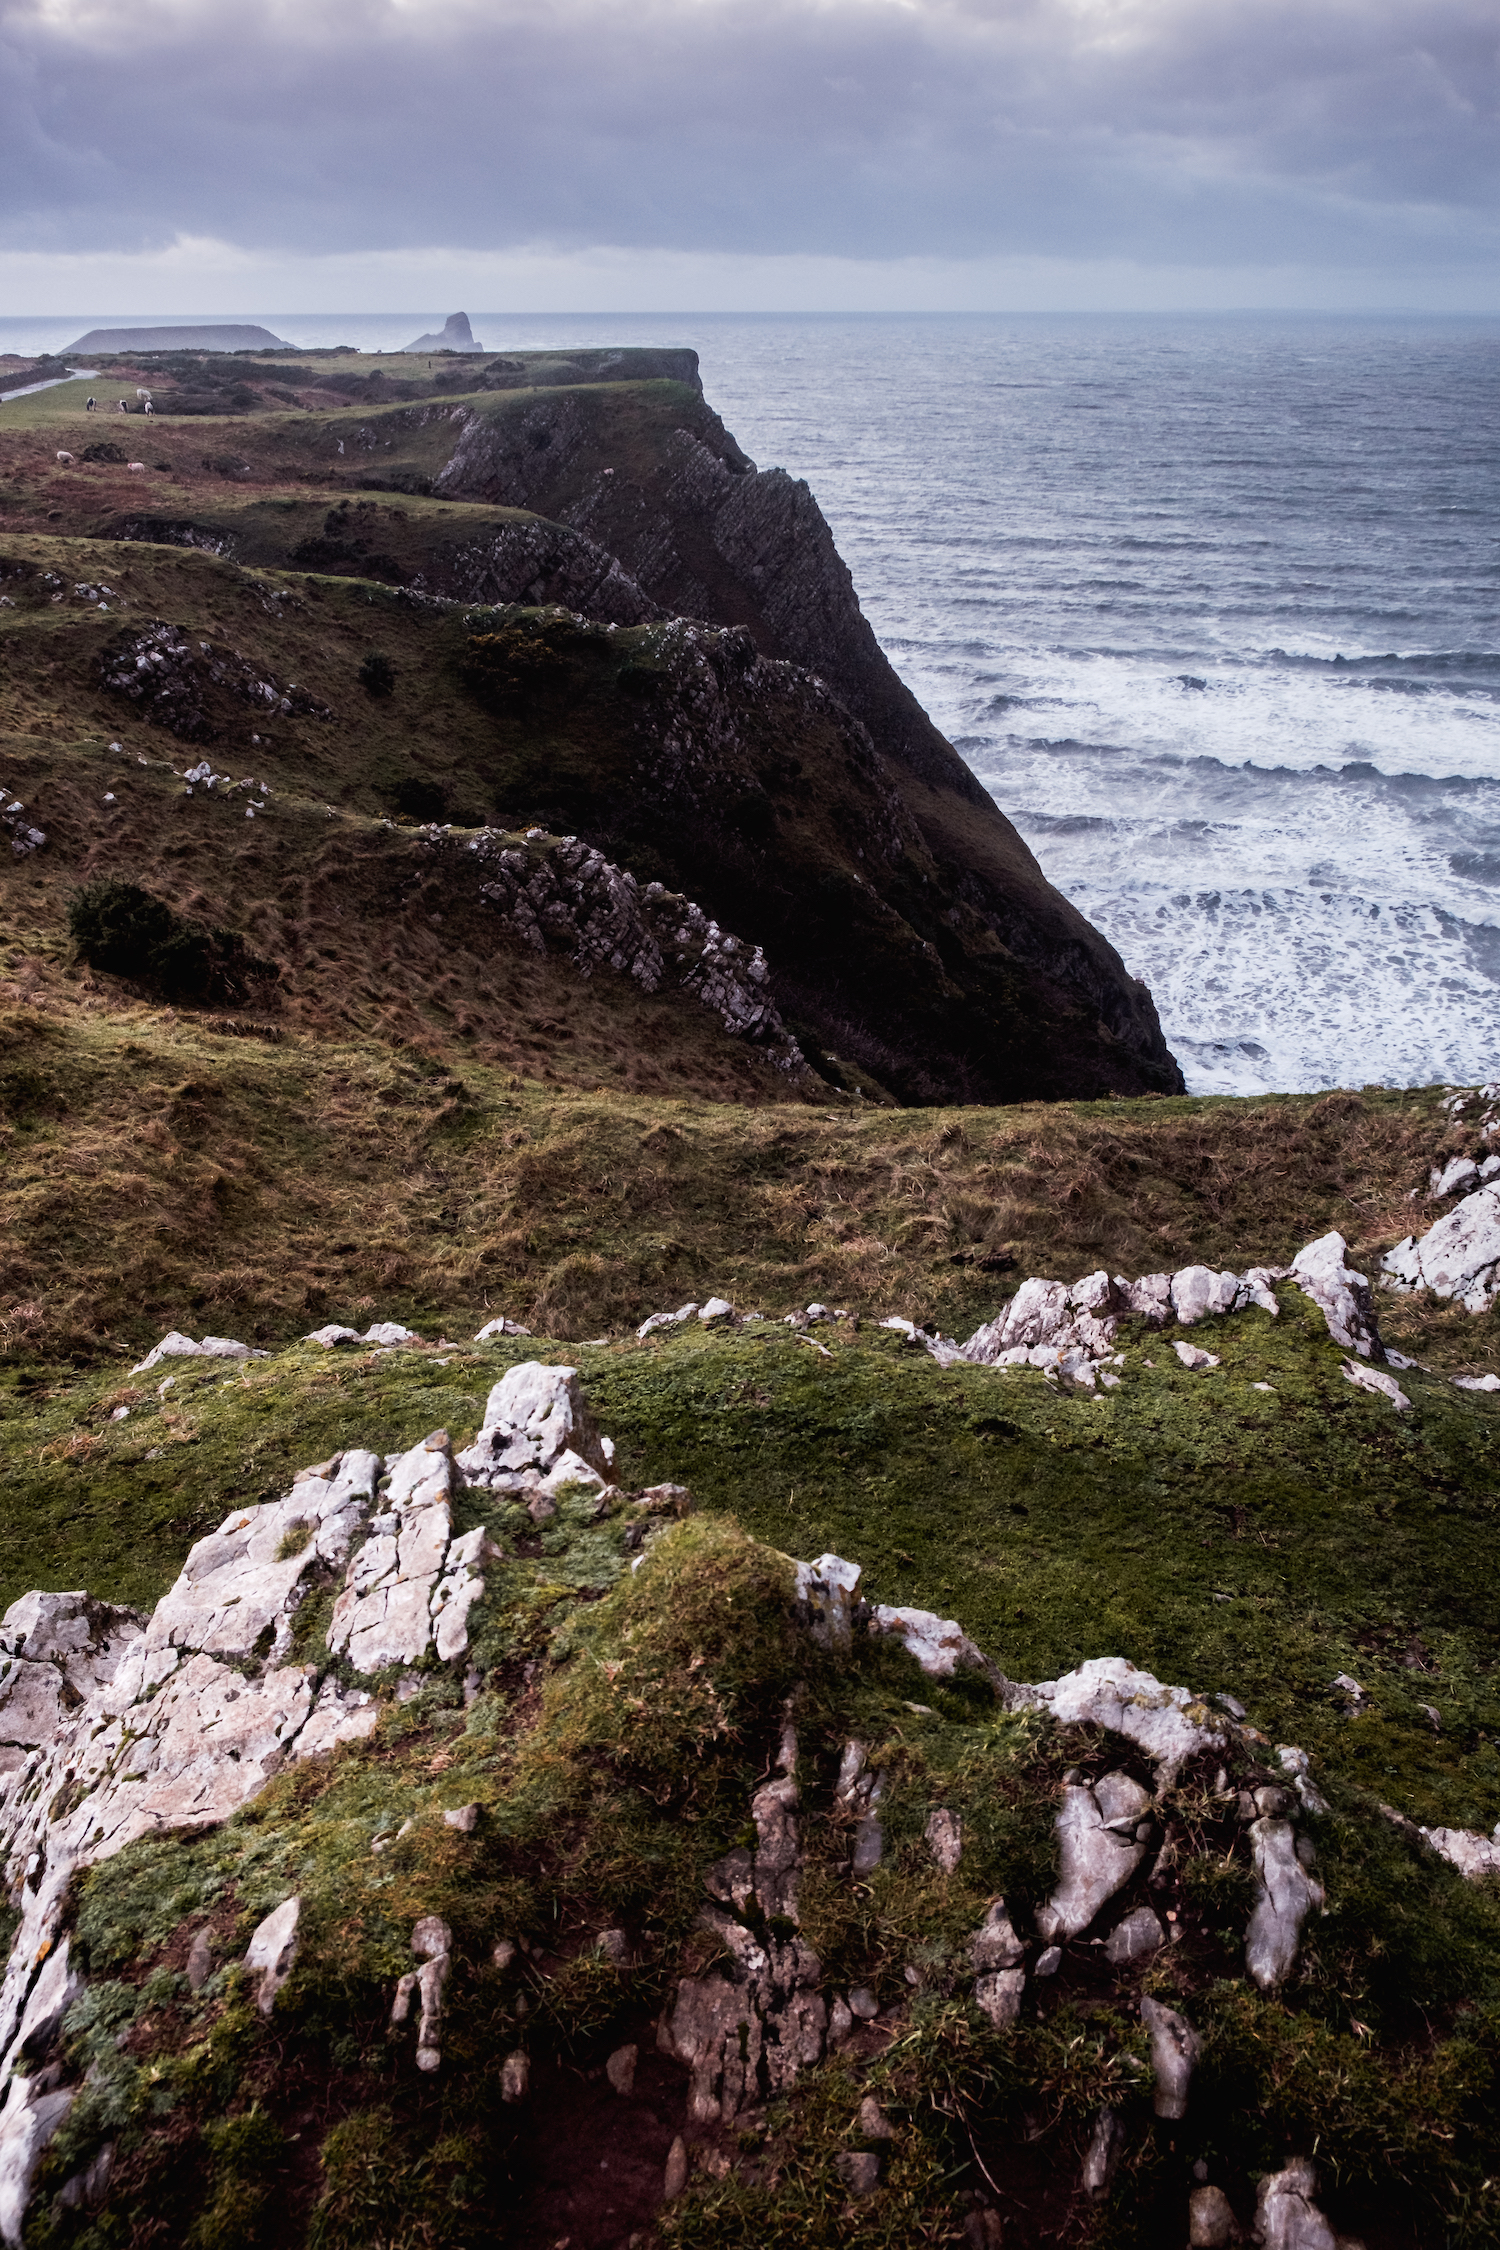 Looking over the cliffs to Worm's Head, Rhossili Bay (Gower Peninsula, South Wales).